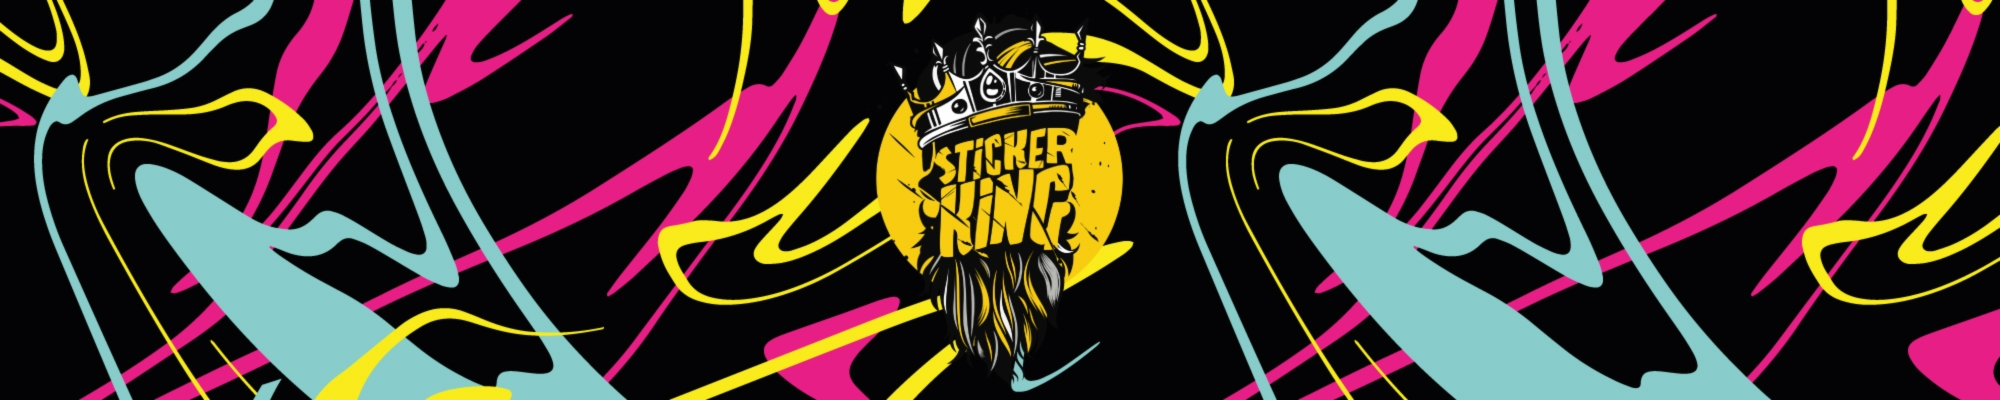 Showroom - StickerKing